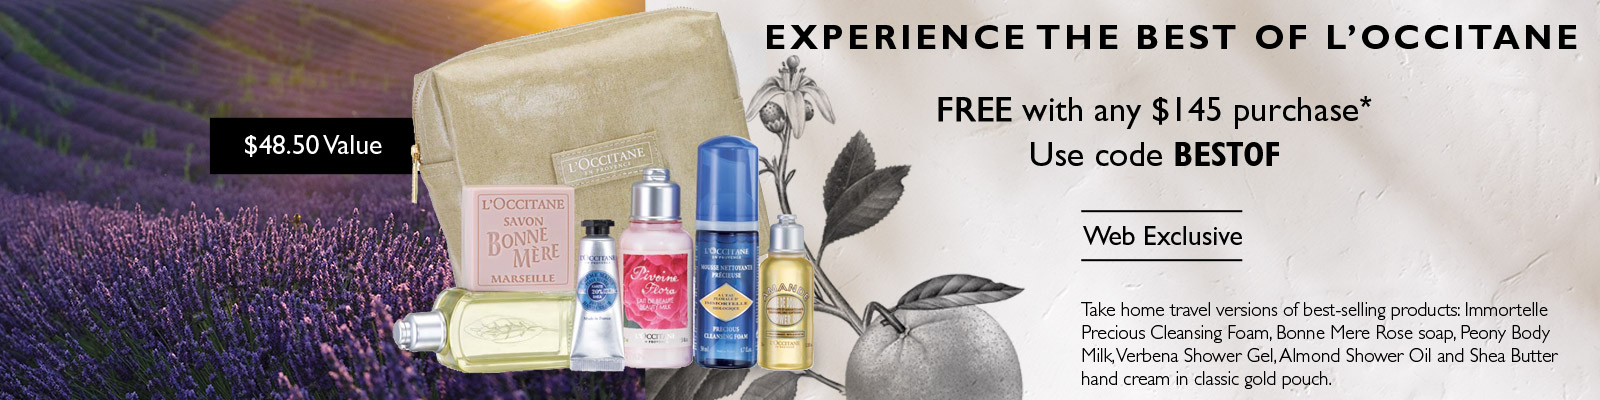 Experience the best of L'Occitane.  FREE with any $145 purchase*.Use code BESTOF. Web Exclusive.